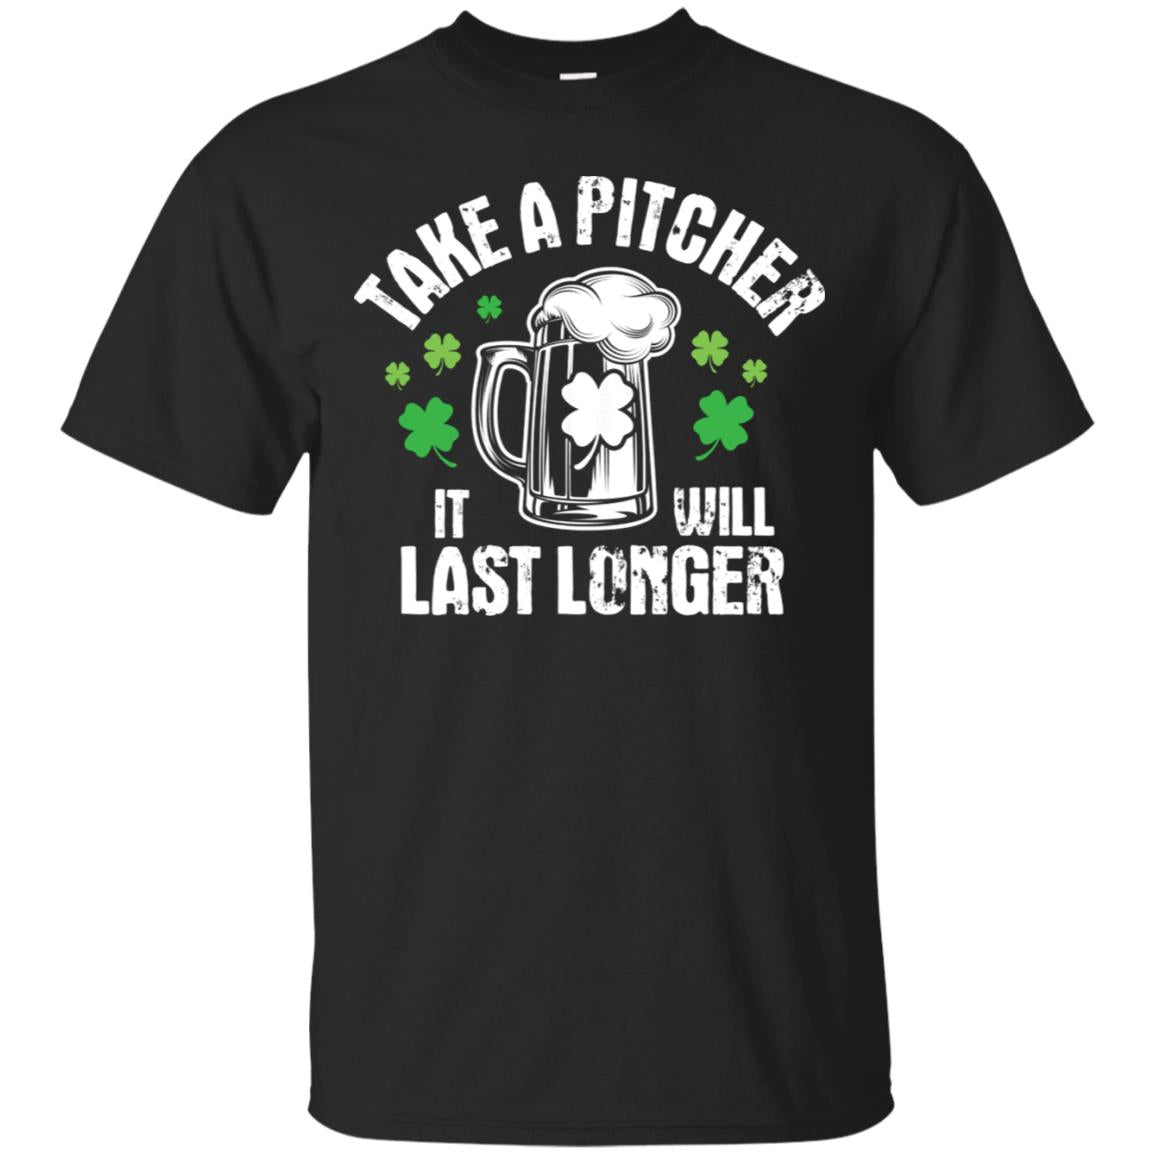 Take a Pitcher It Will Last Longer Ireland Beer T-Shirt 99promocode